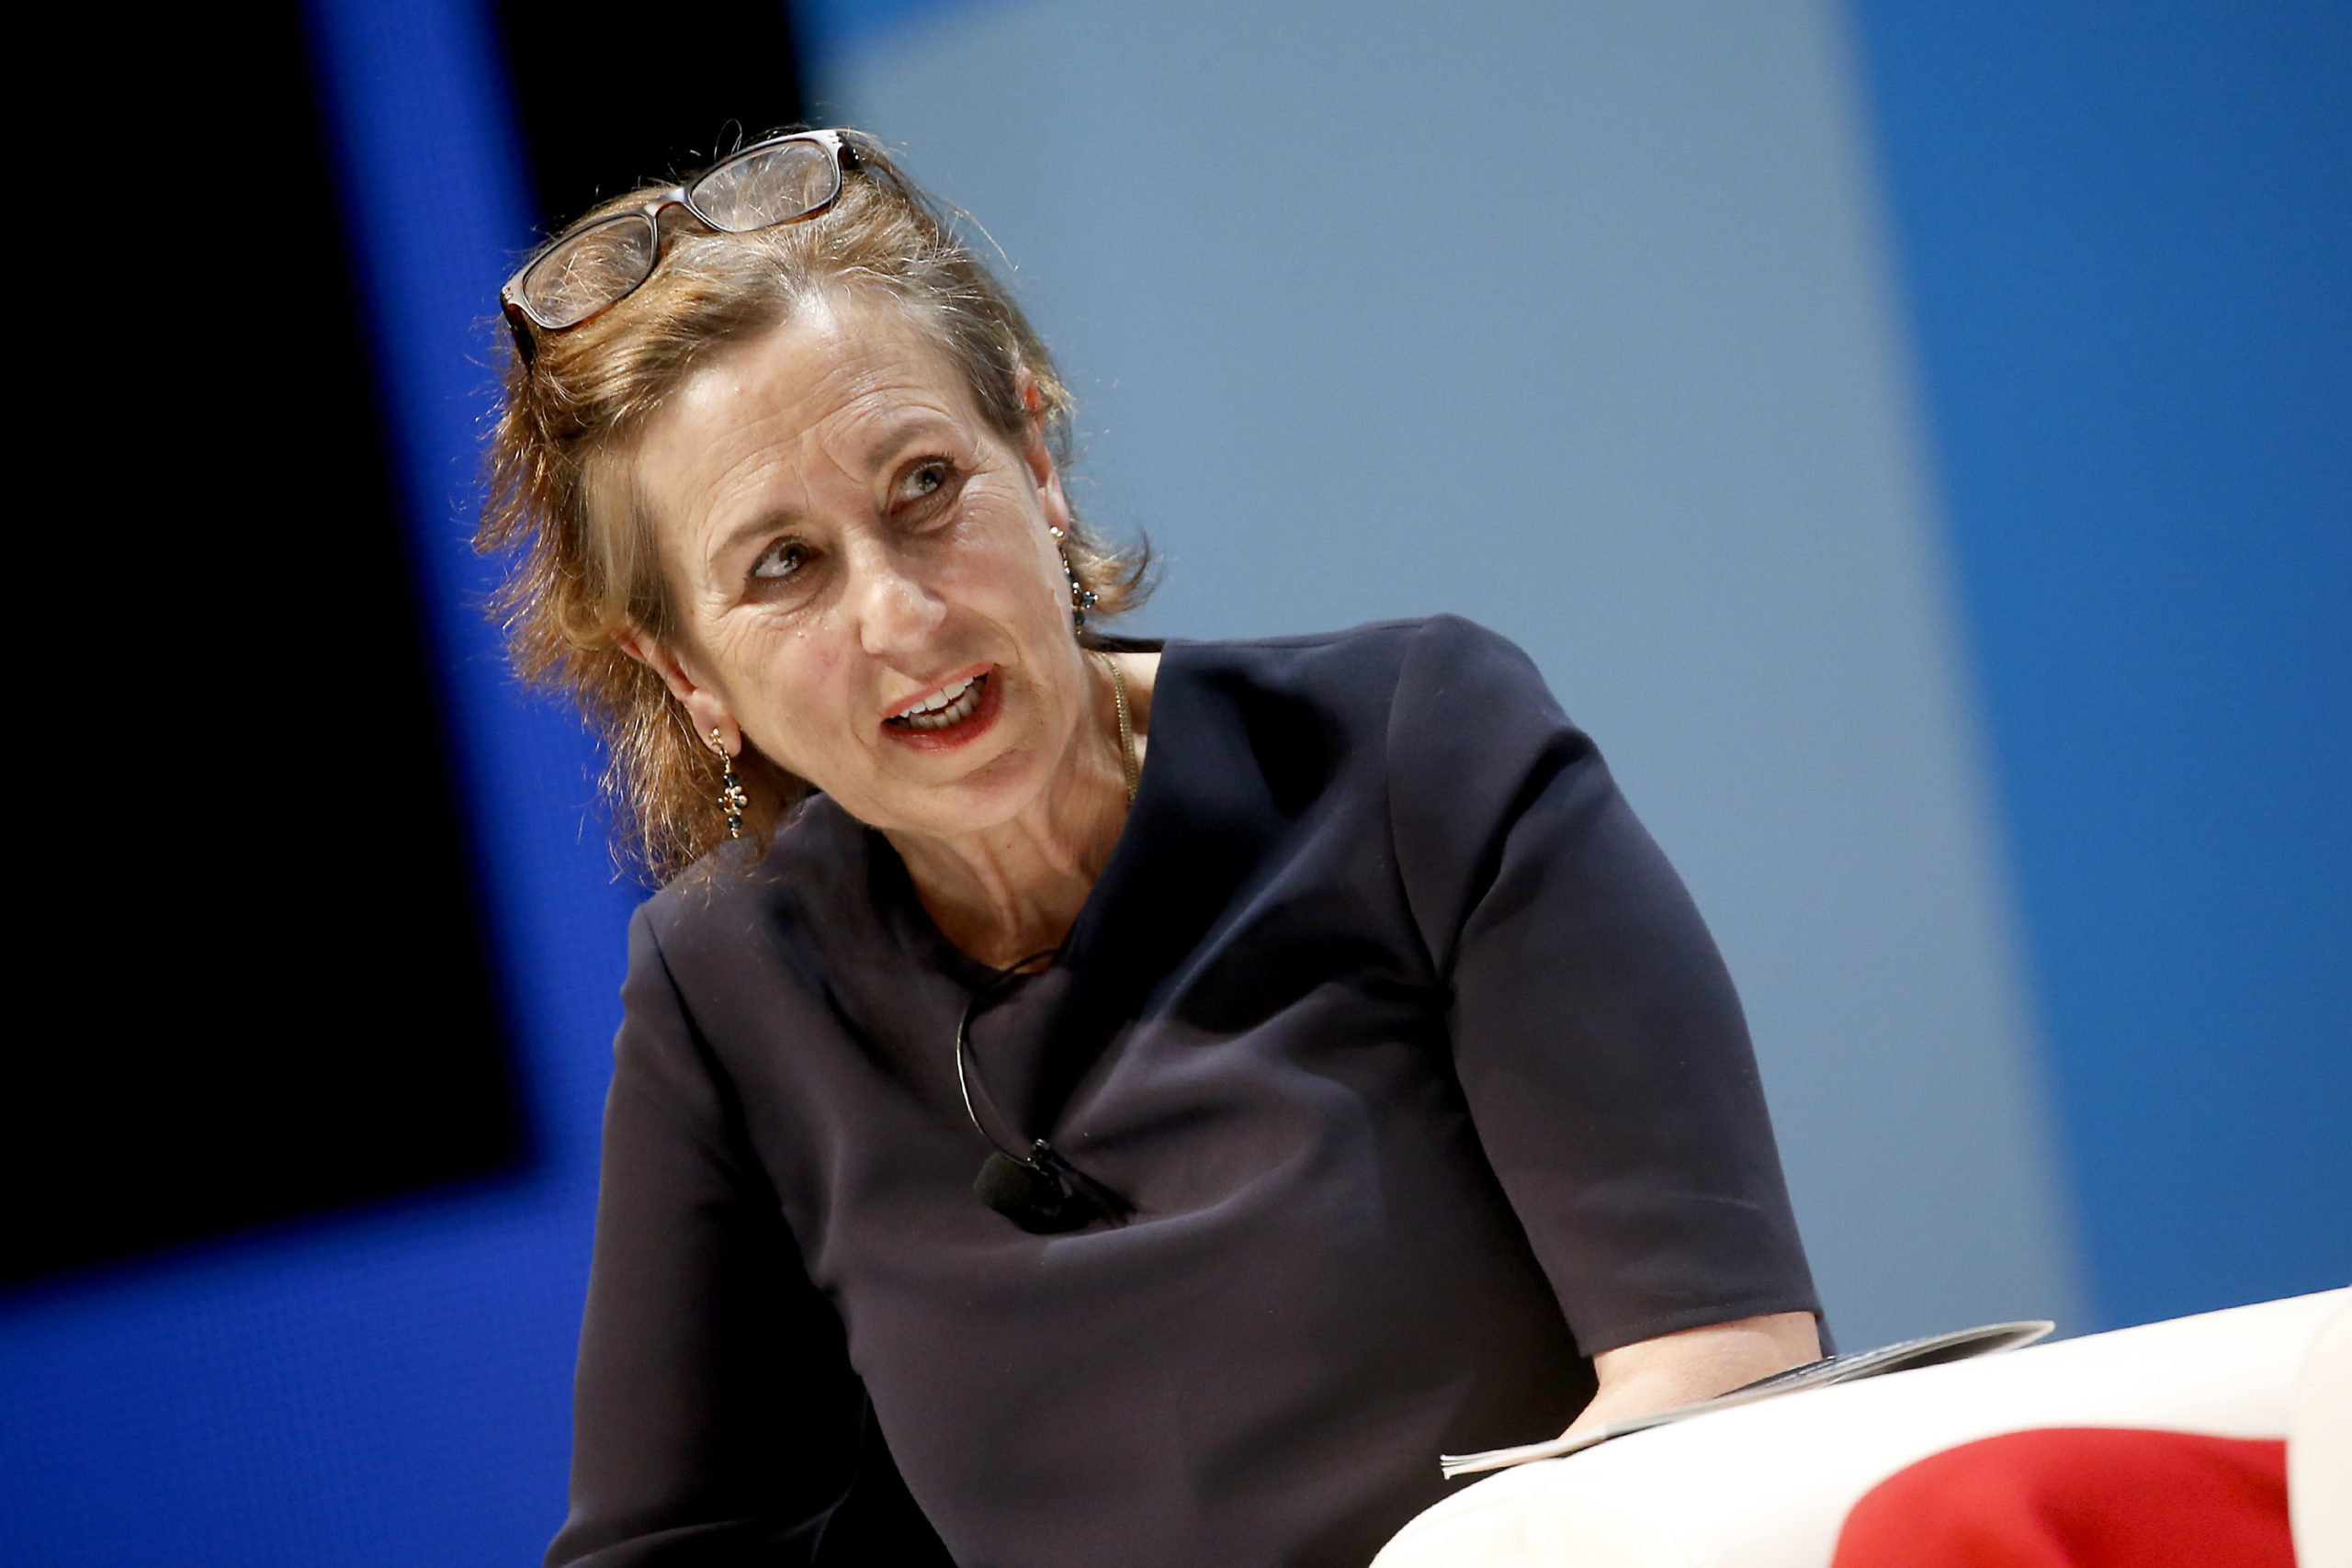 Newsnight journalist Kirsty Wark